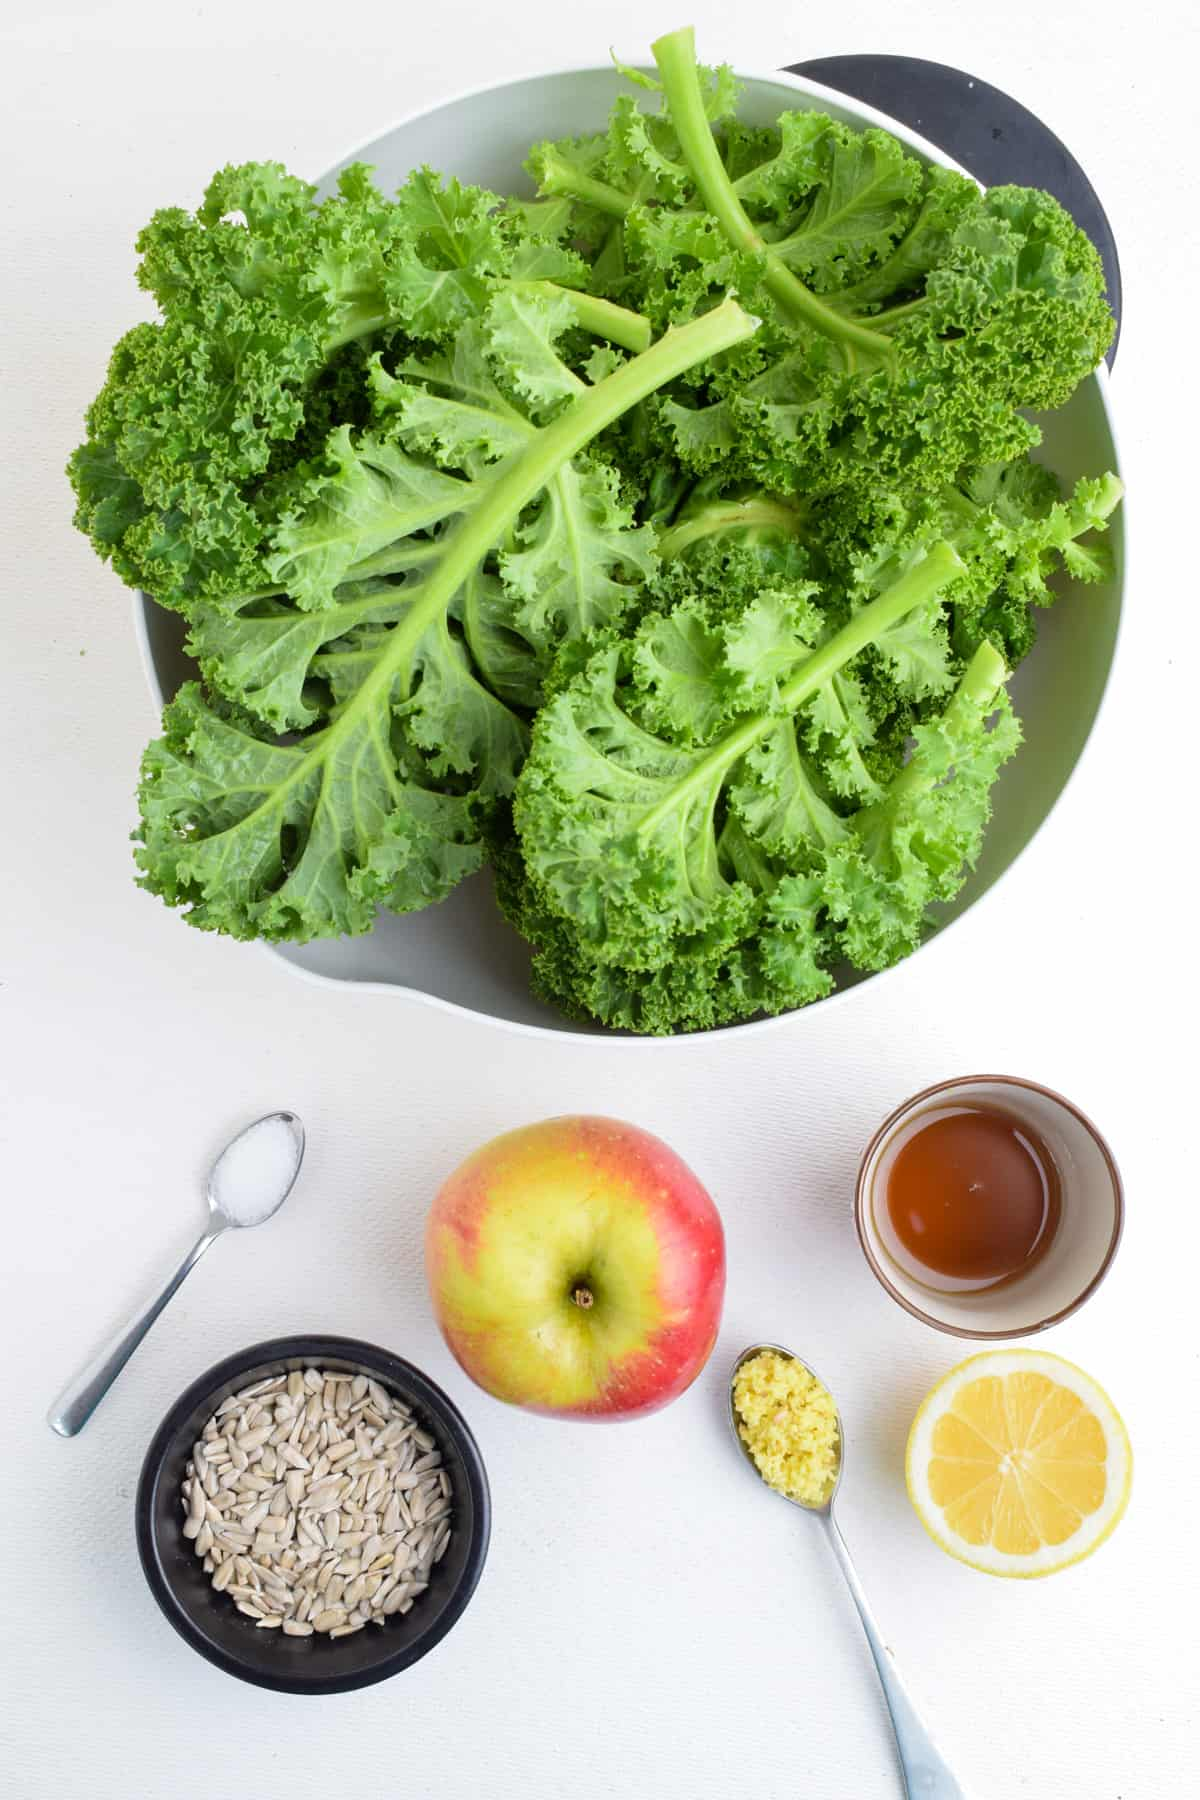 A bowl of curly kale leaves, alongside the other ingredients for the salad.